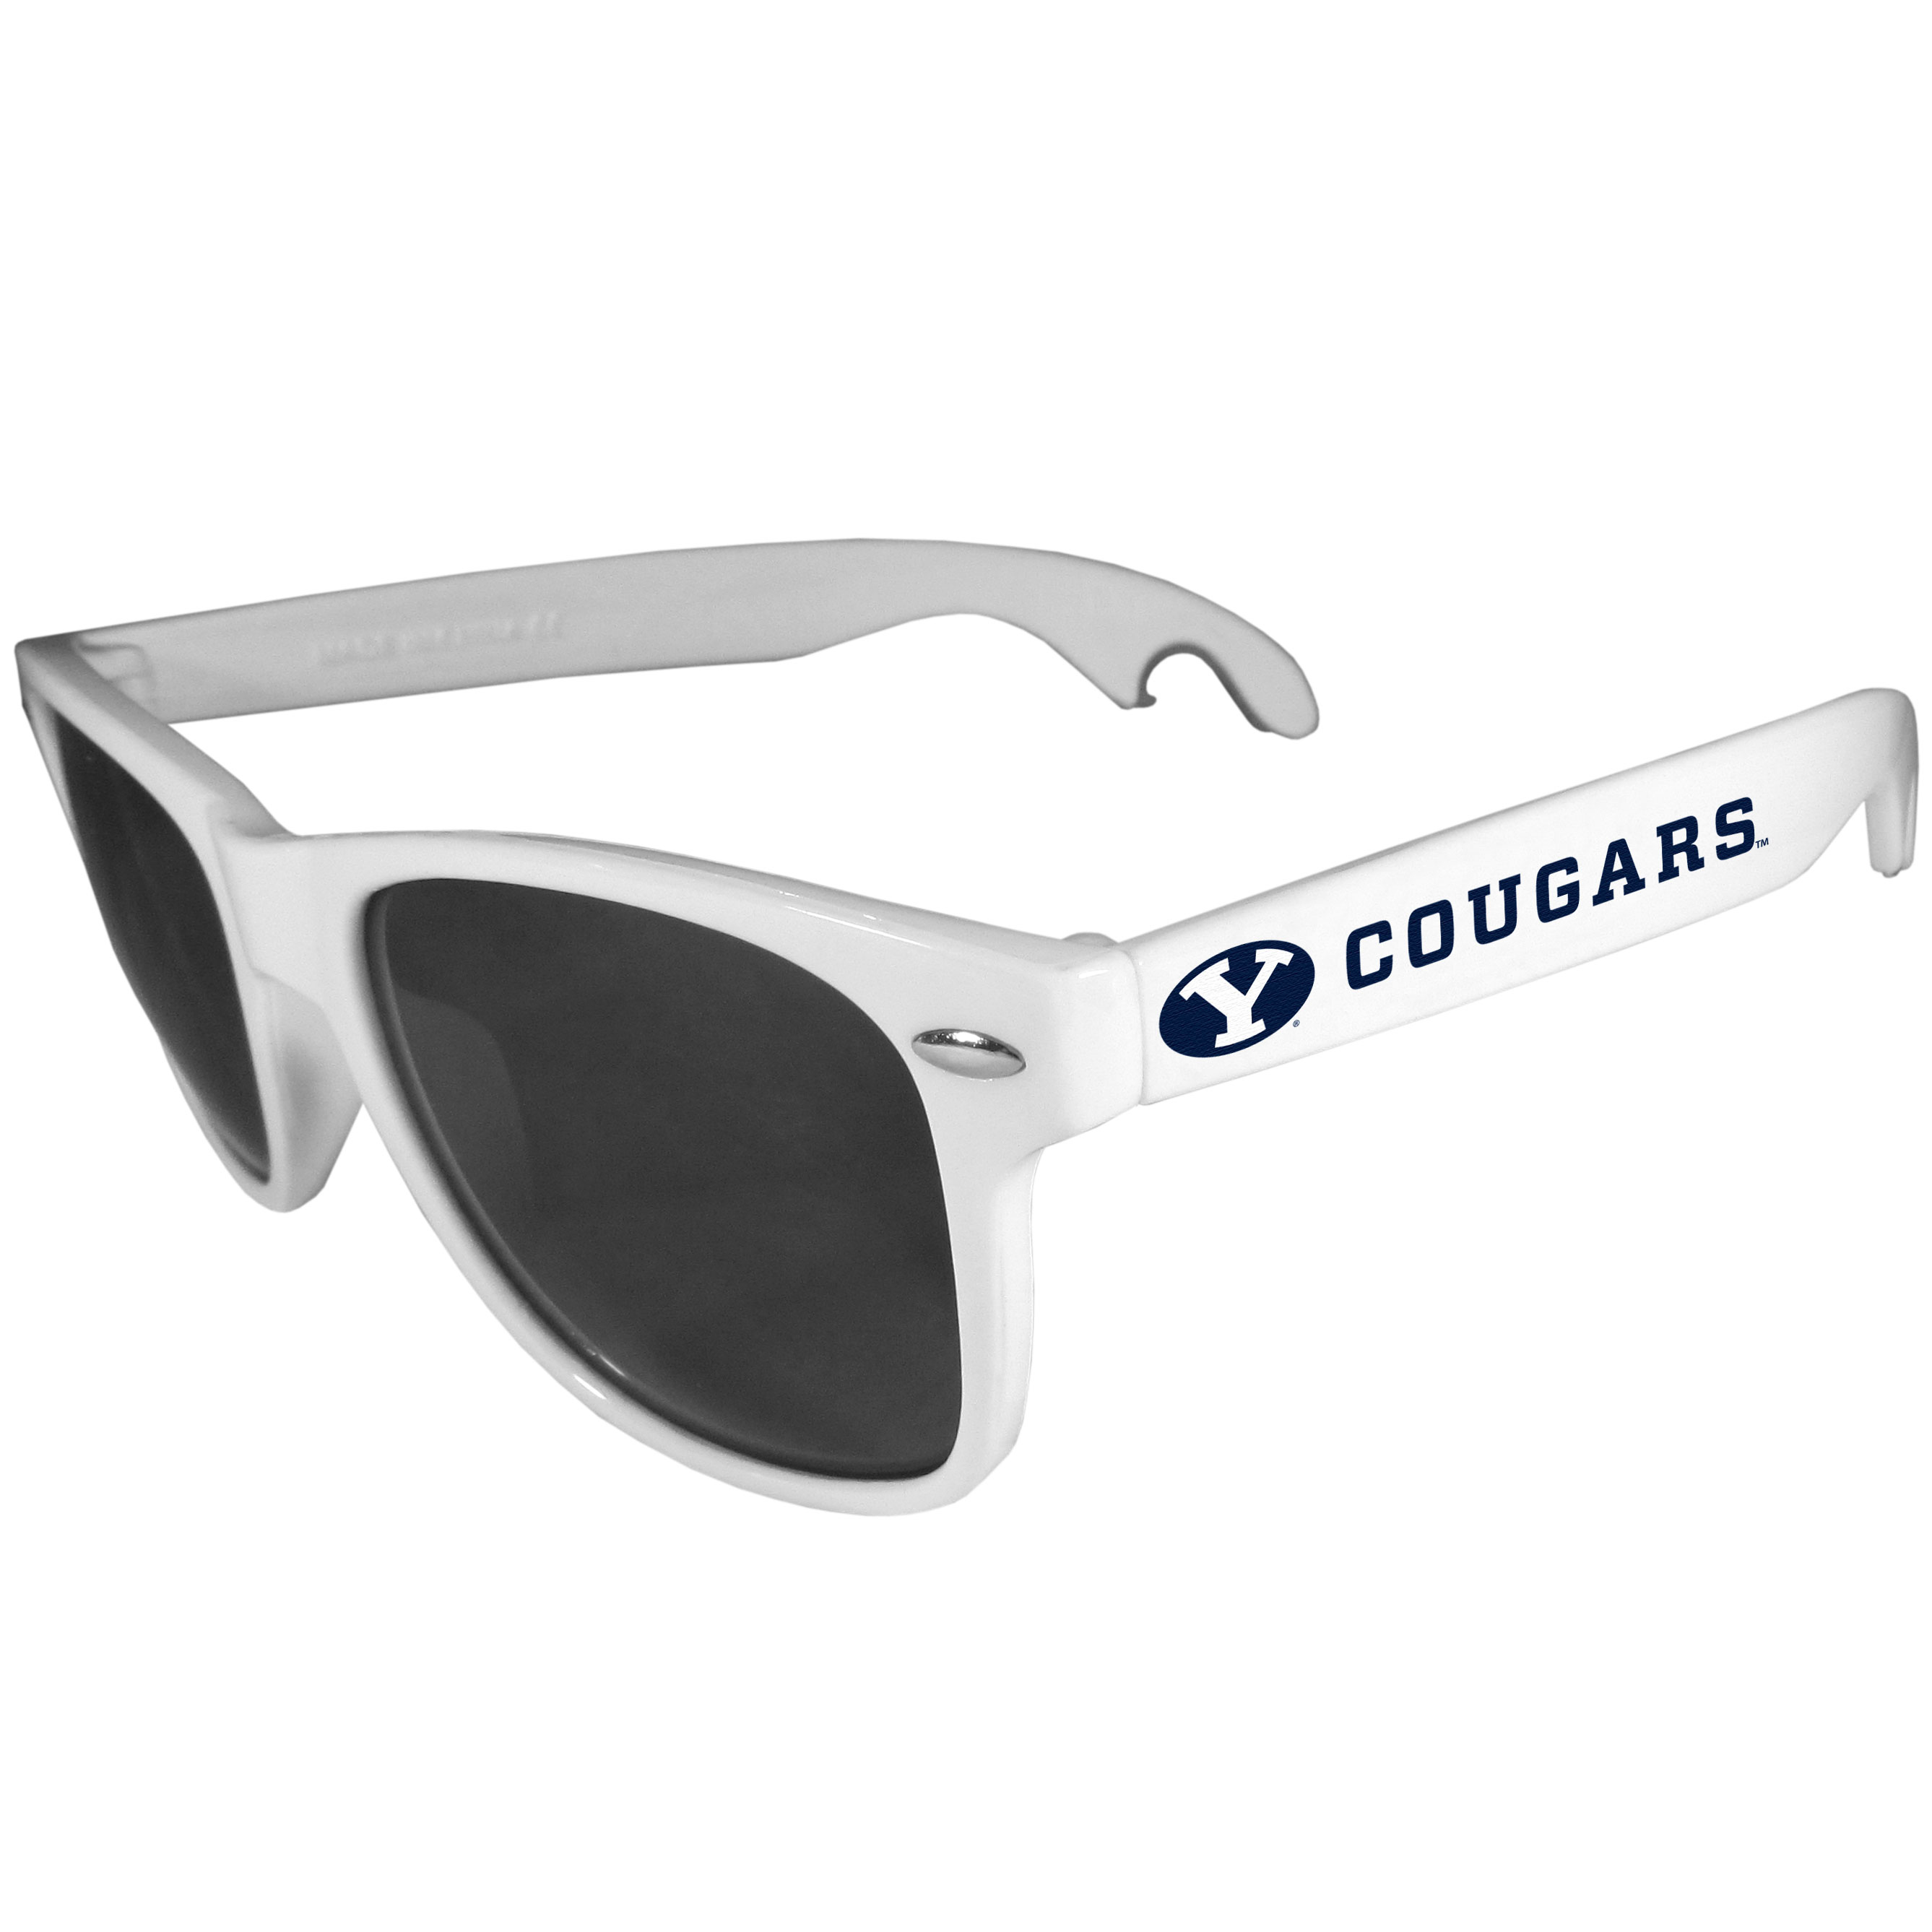 BYU Cougars Beachfarer Bottle Opener Sunglasses, White - Seriously, these sunglasses open bottles! Keep the party going with these amazing BYU Cougars bottle opener sunglasses. The stylish retro frames feature team designs on the arms and functional bottle openers on the end of the arms. Whether you are at the beach or having a backyard BBQ on game day, these shades will keep your eyes protected with 100% UVA/UVB protection and keep you hydrated with the handy bottle opener arms.